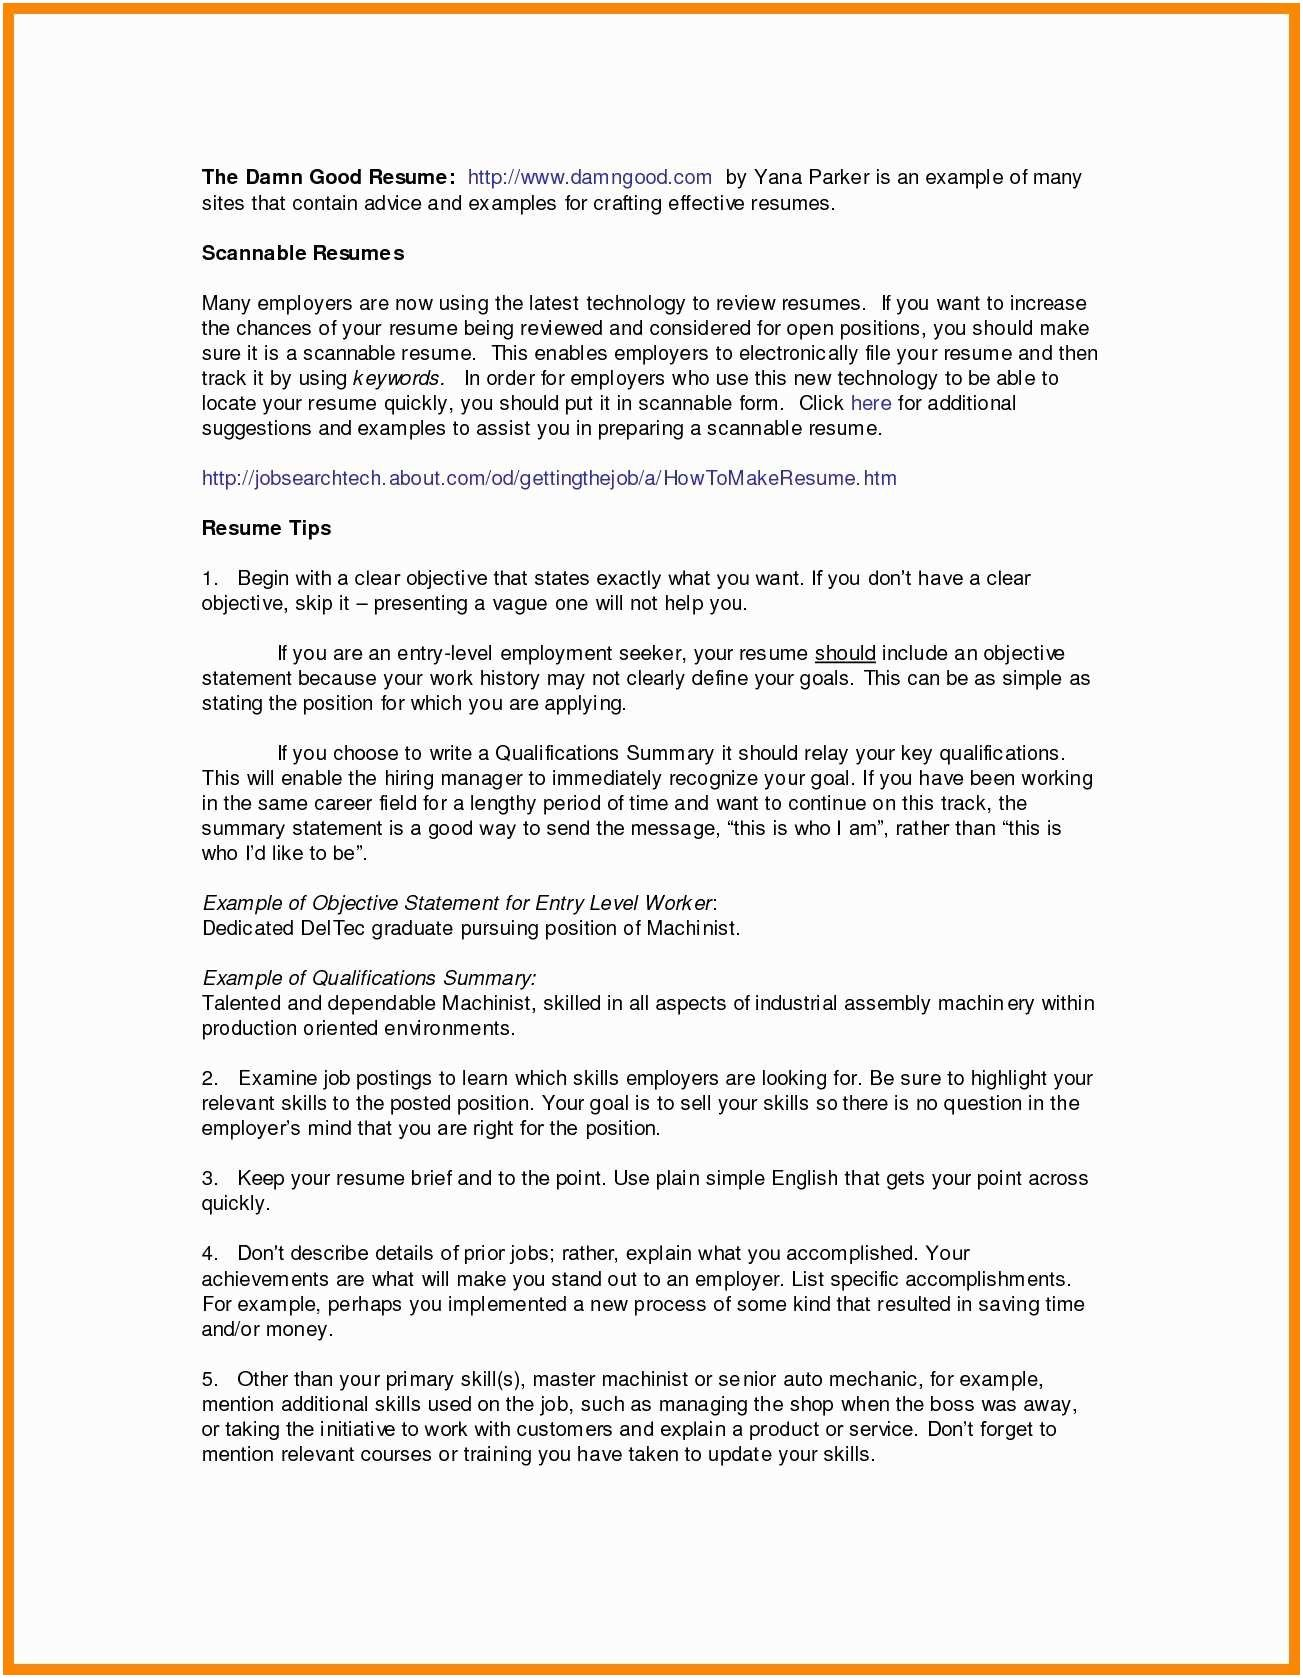 46+ Non certified medical assistant resume ideas in 2021